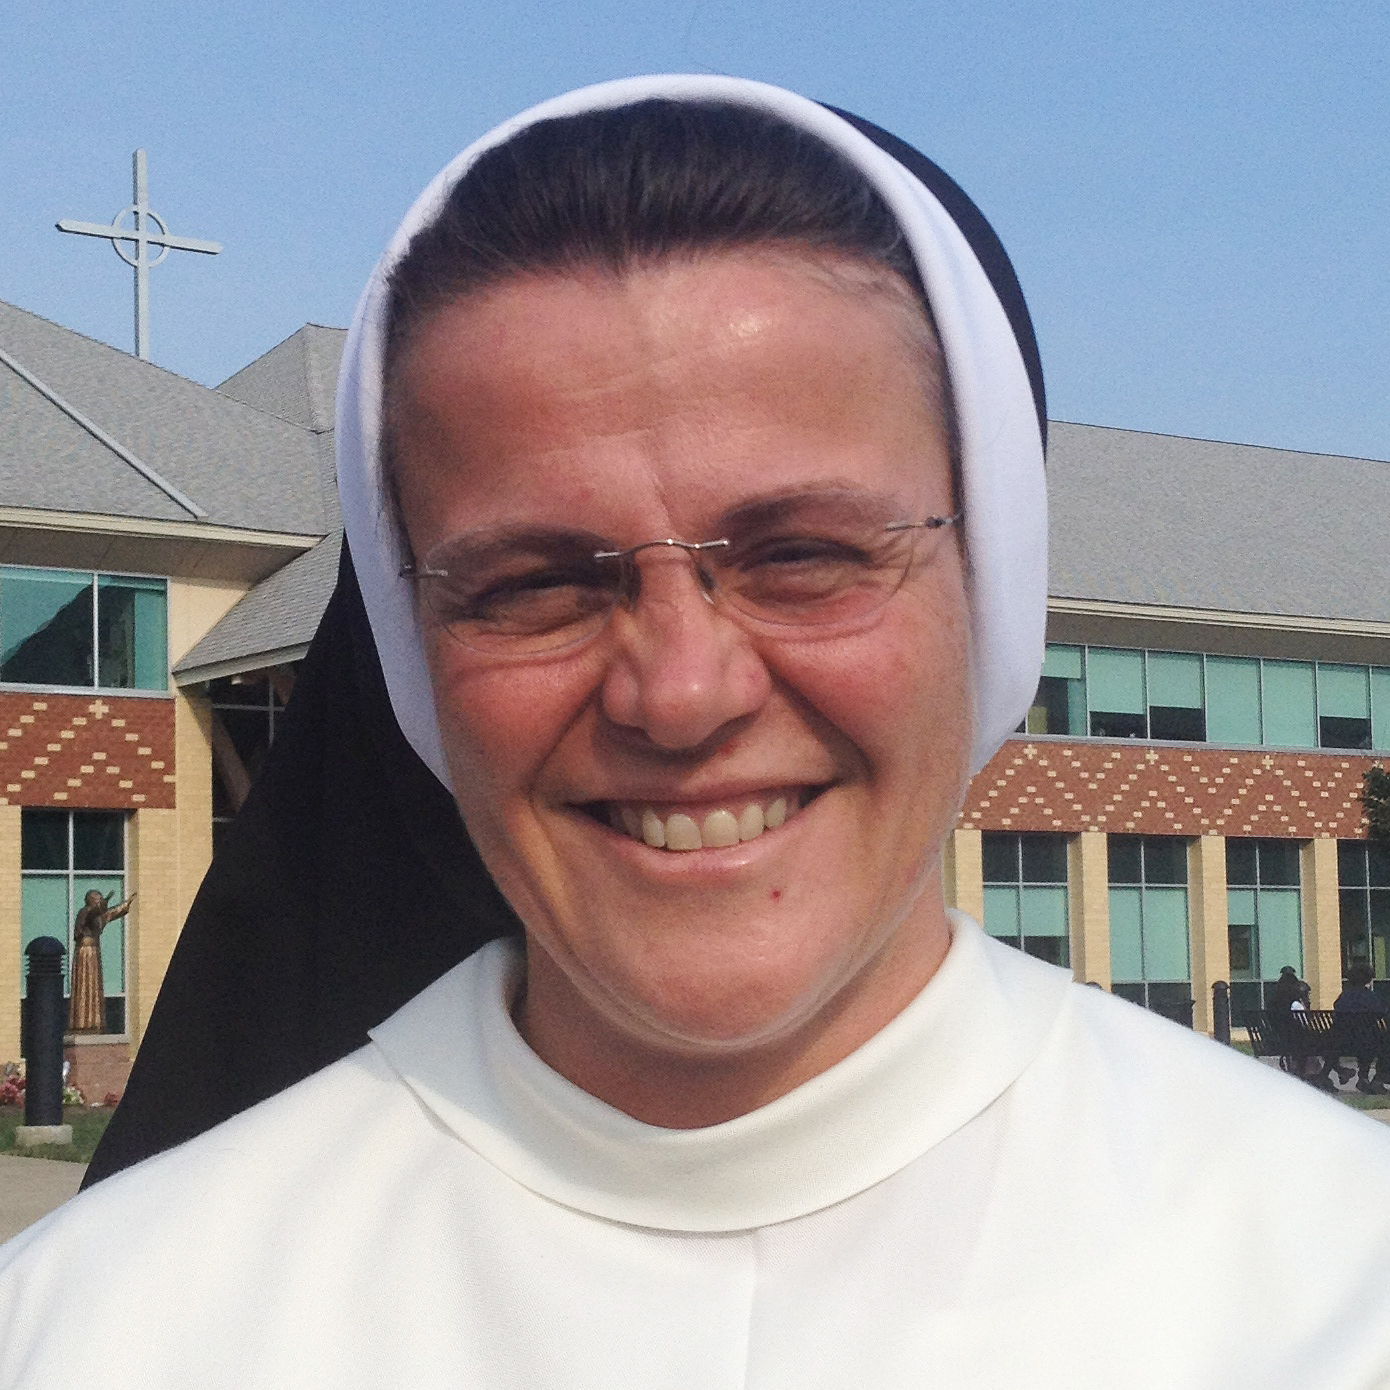 Sister Mary Jordon Hoover, principal of Pope John Paul the Great Catholic High School in Dumfries, Va., is a member of the Dominican Sisters of St. Cecilia. The order falls under the jurisdiction of the Council of Major Superiors of Women Religious, a more conservative organization.